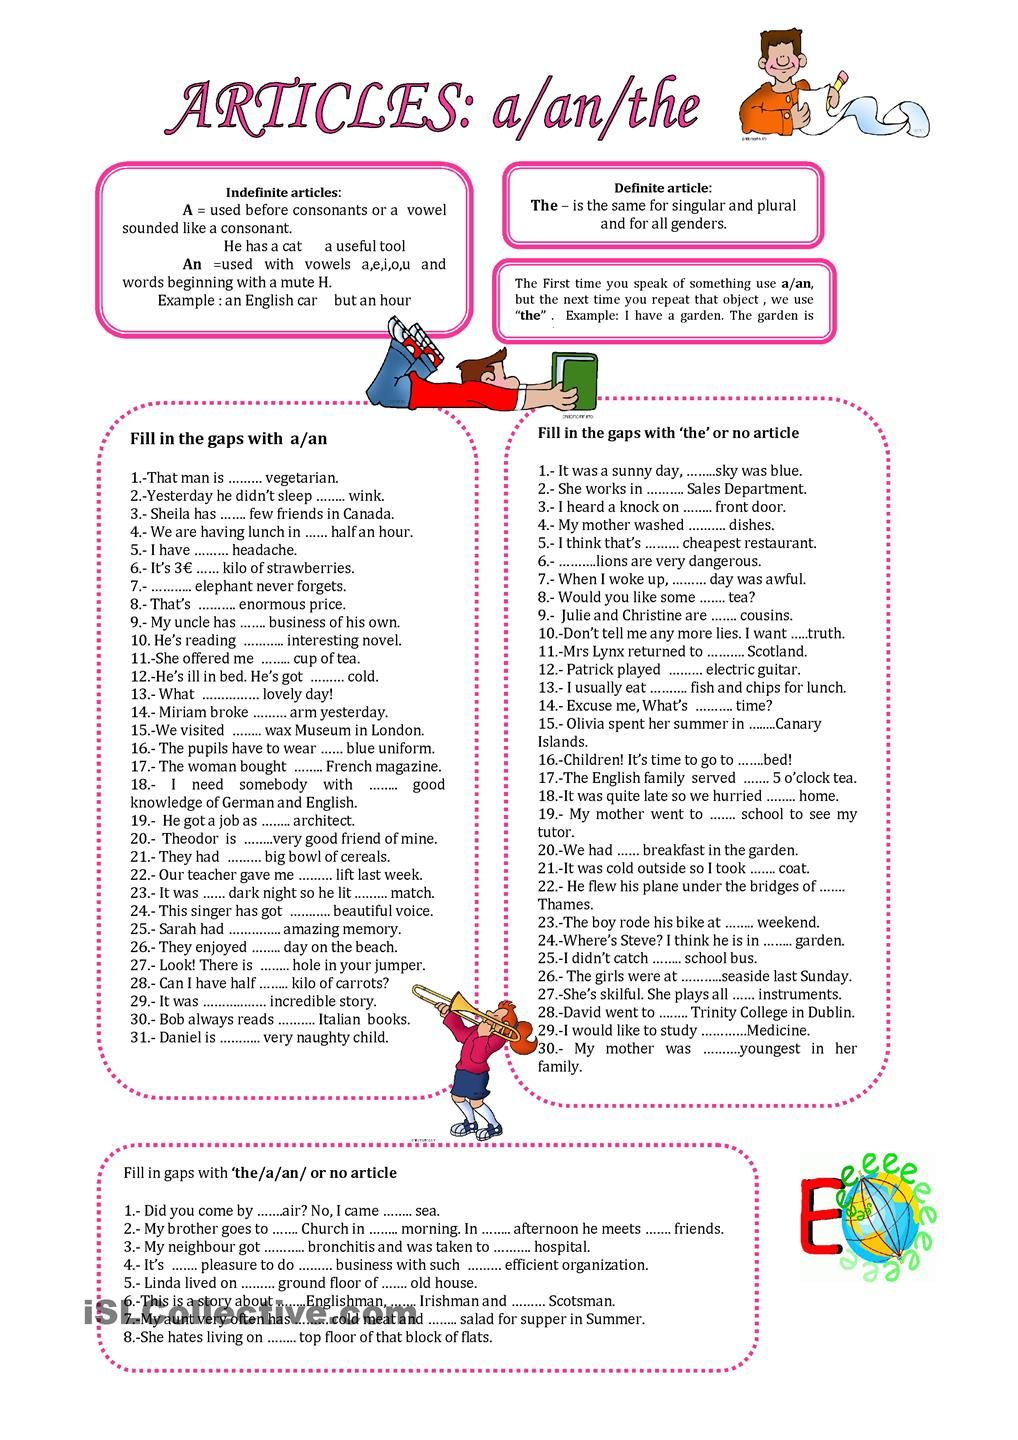 Worksheet Use Of A An The Worksheets worksheets on present perfect spanish google search 3 here you have some exercises to practise the use of definite and indefinite articles listening writing pre intermed